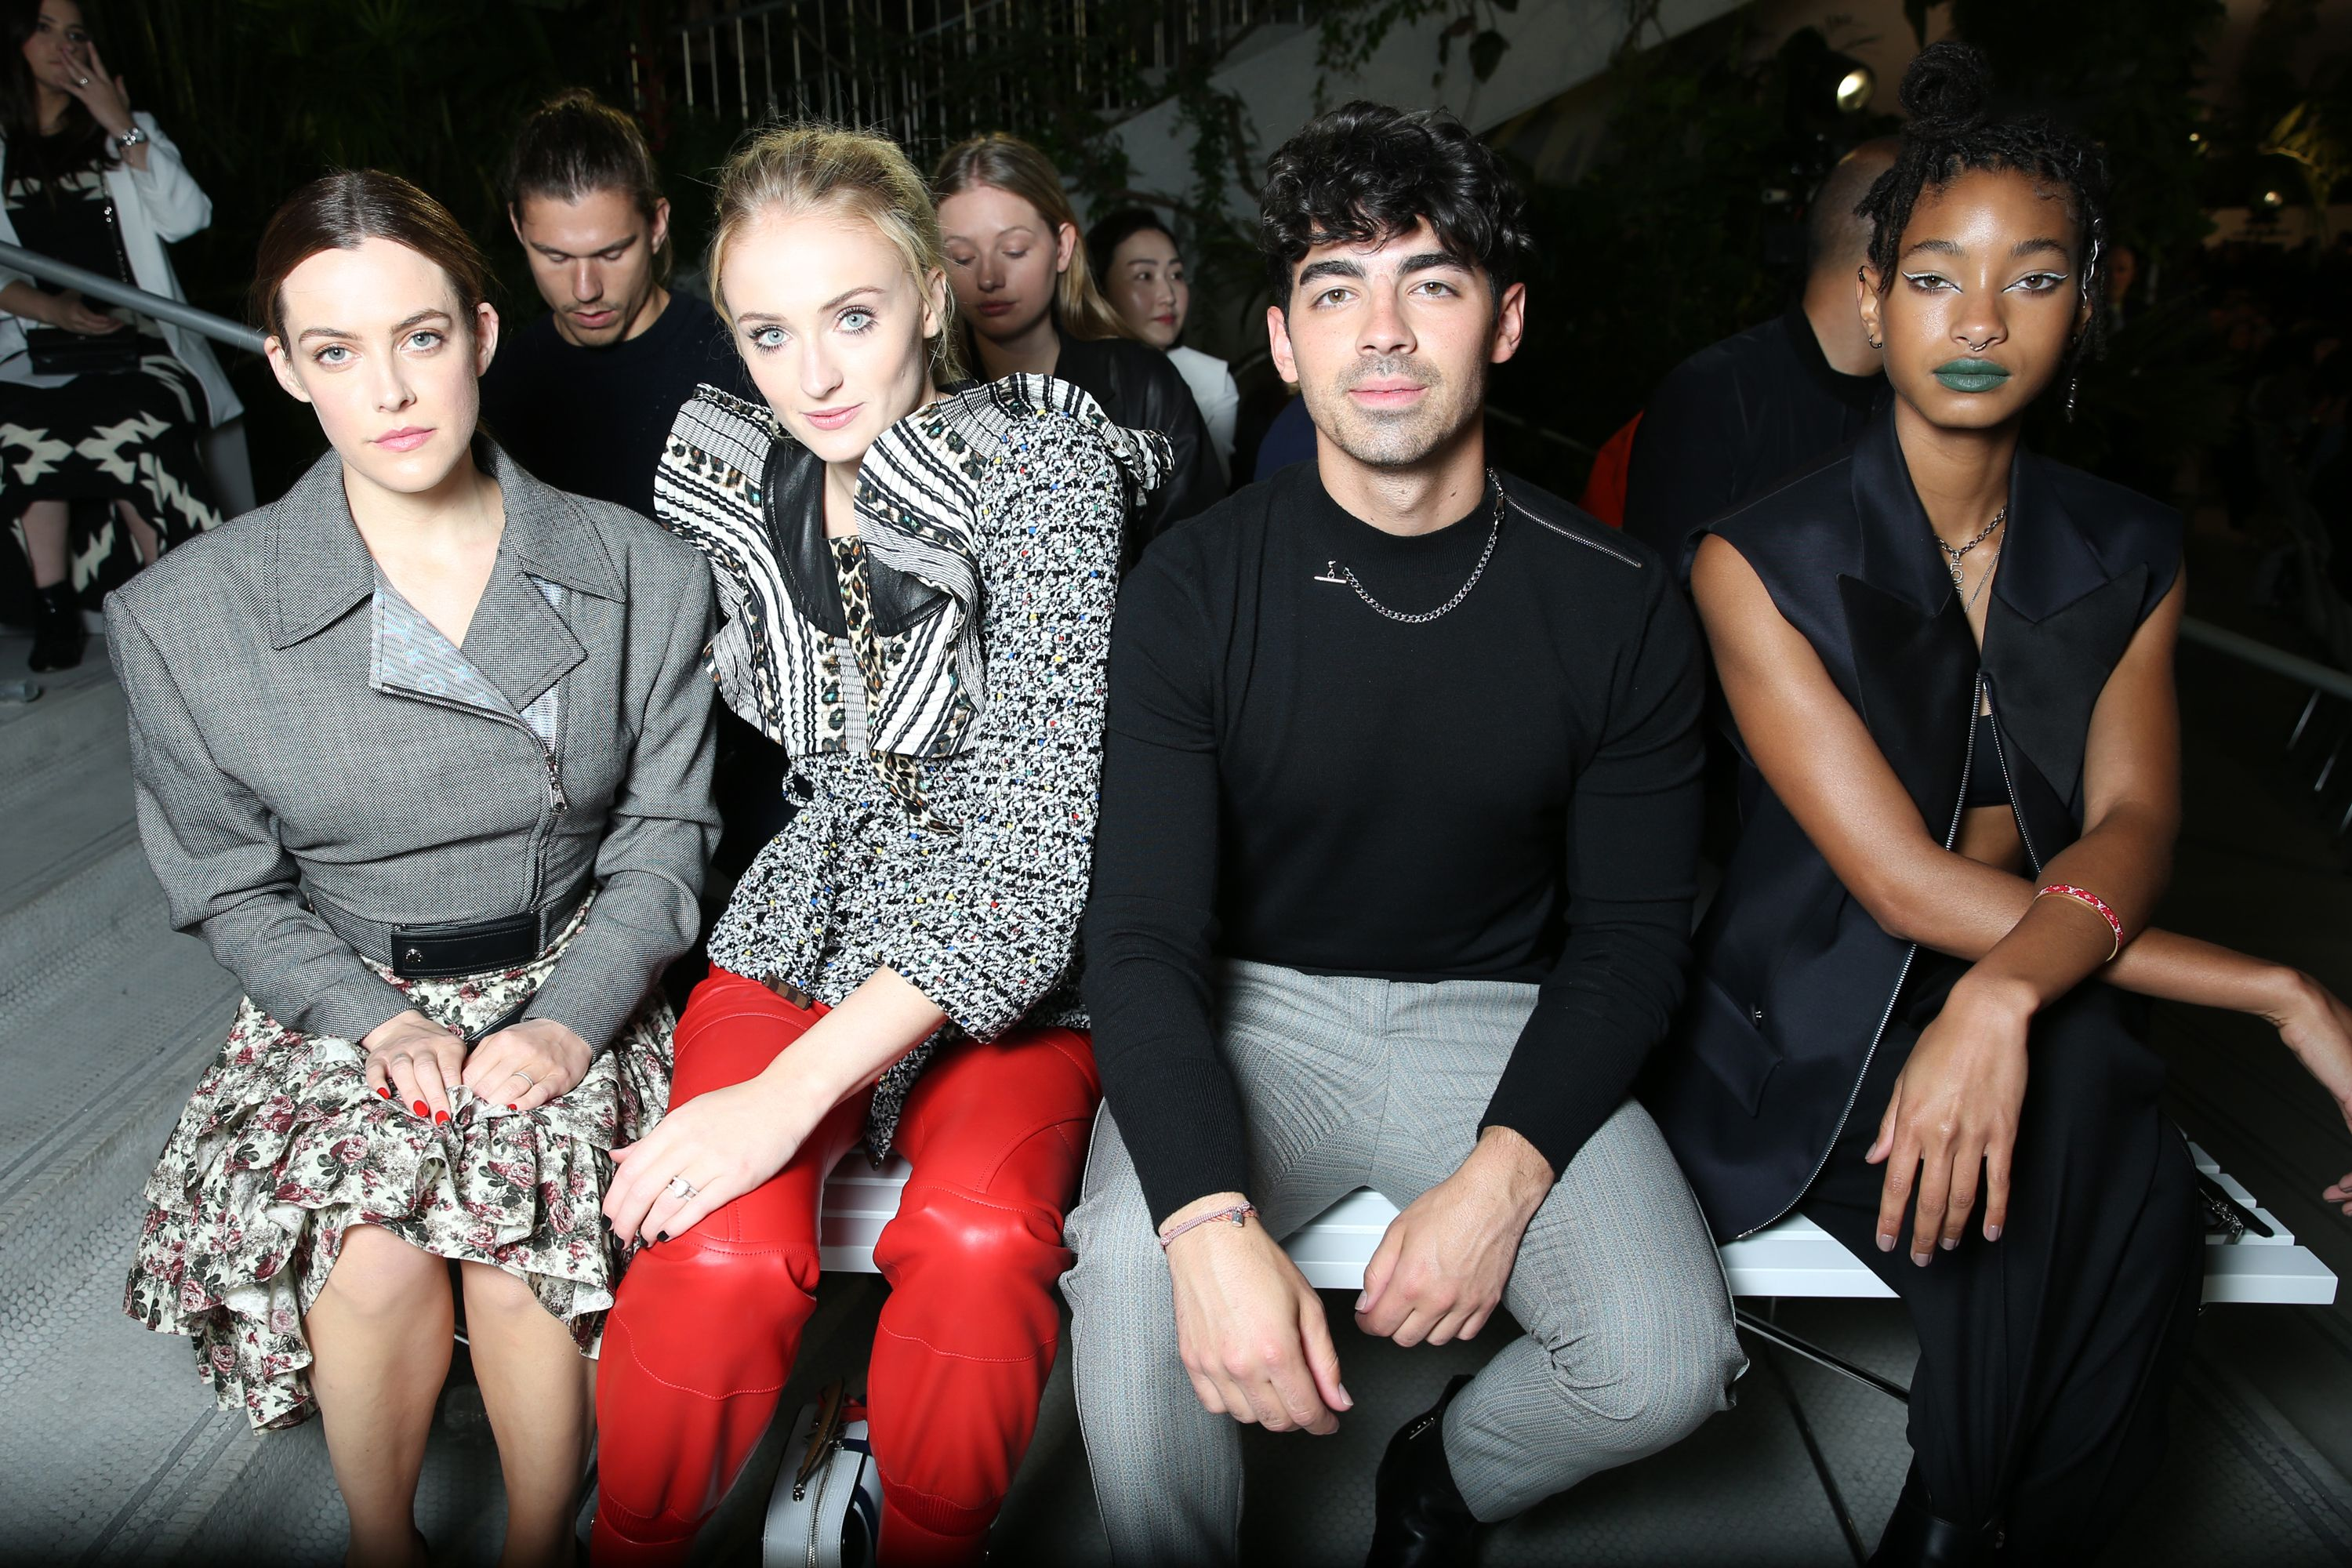 Riley Keough, Sophie Turner, Joe Jonas, and Willow Smith in the front row.